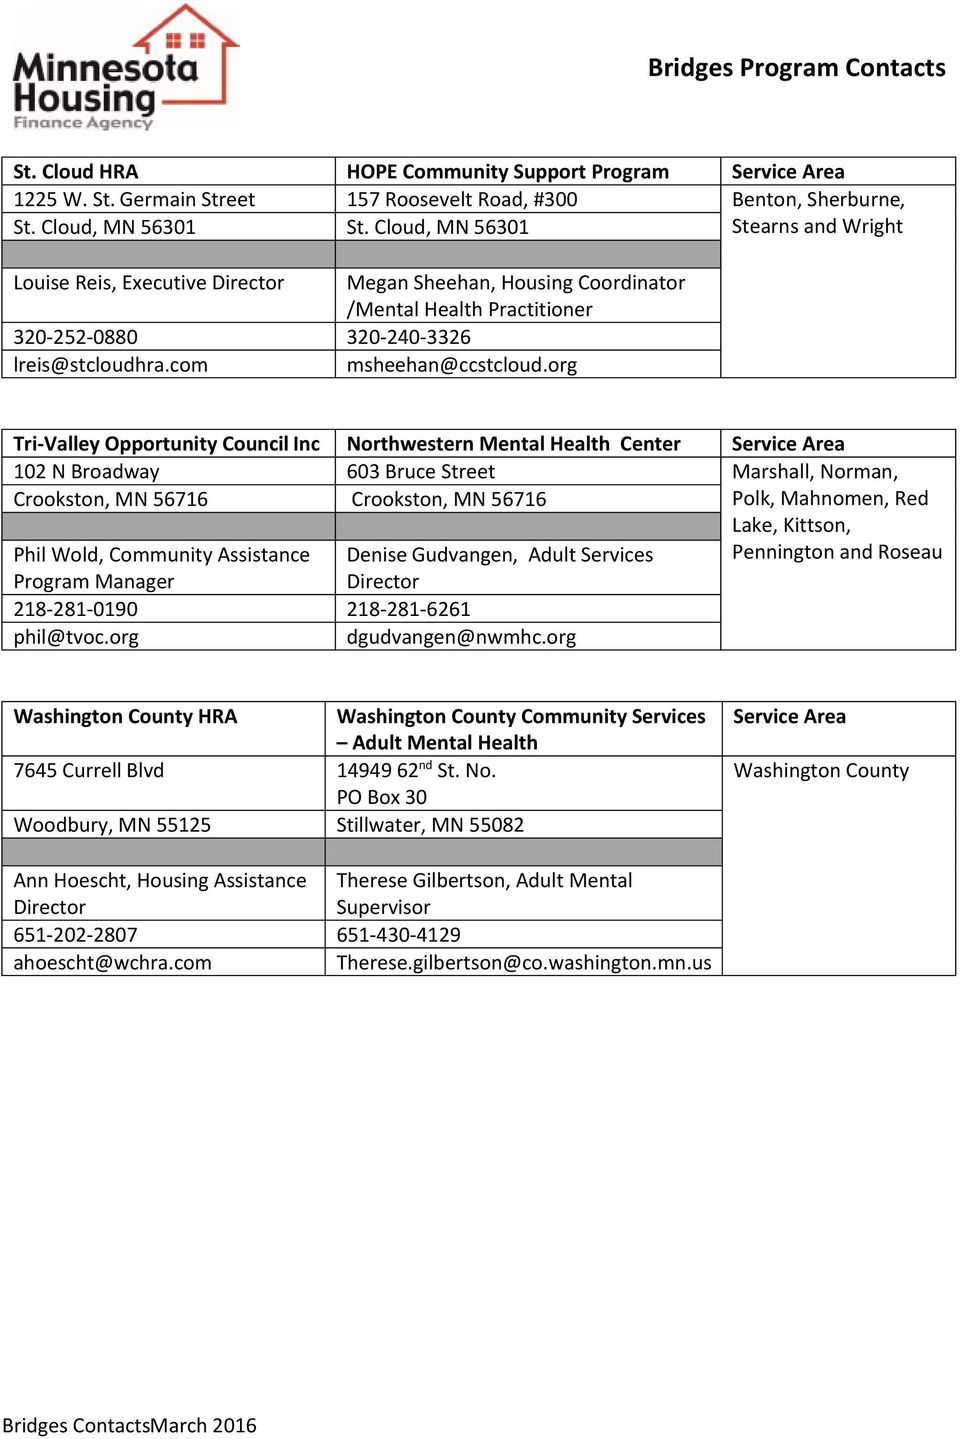 Bridges Program Contacts Pdf